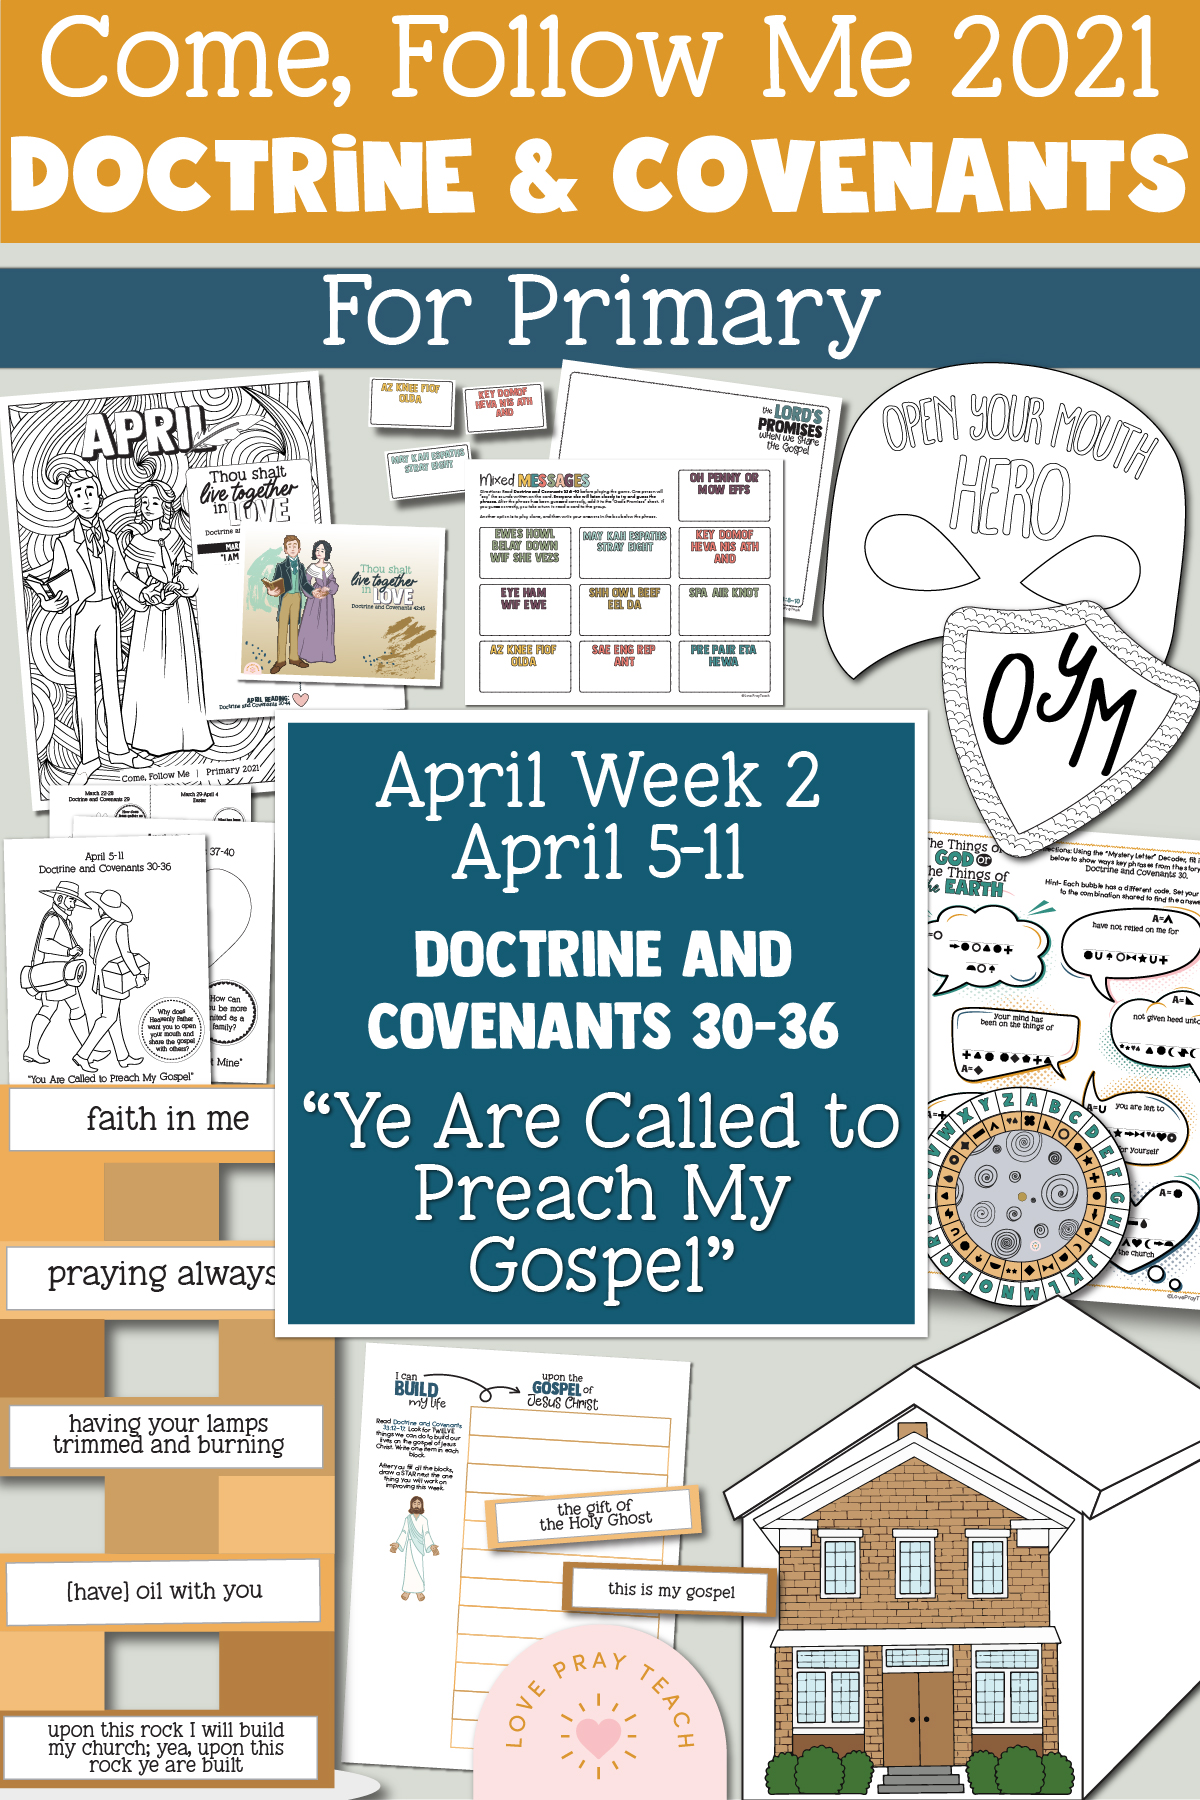 """Come, Follow Me for Primary 2021 April Week 2 Doctrine and Covenants 30-36 """"You Are Called to Preach My Gospel"""" Printable Lesson Materials"""